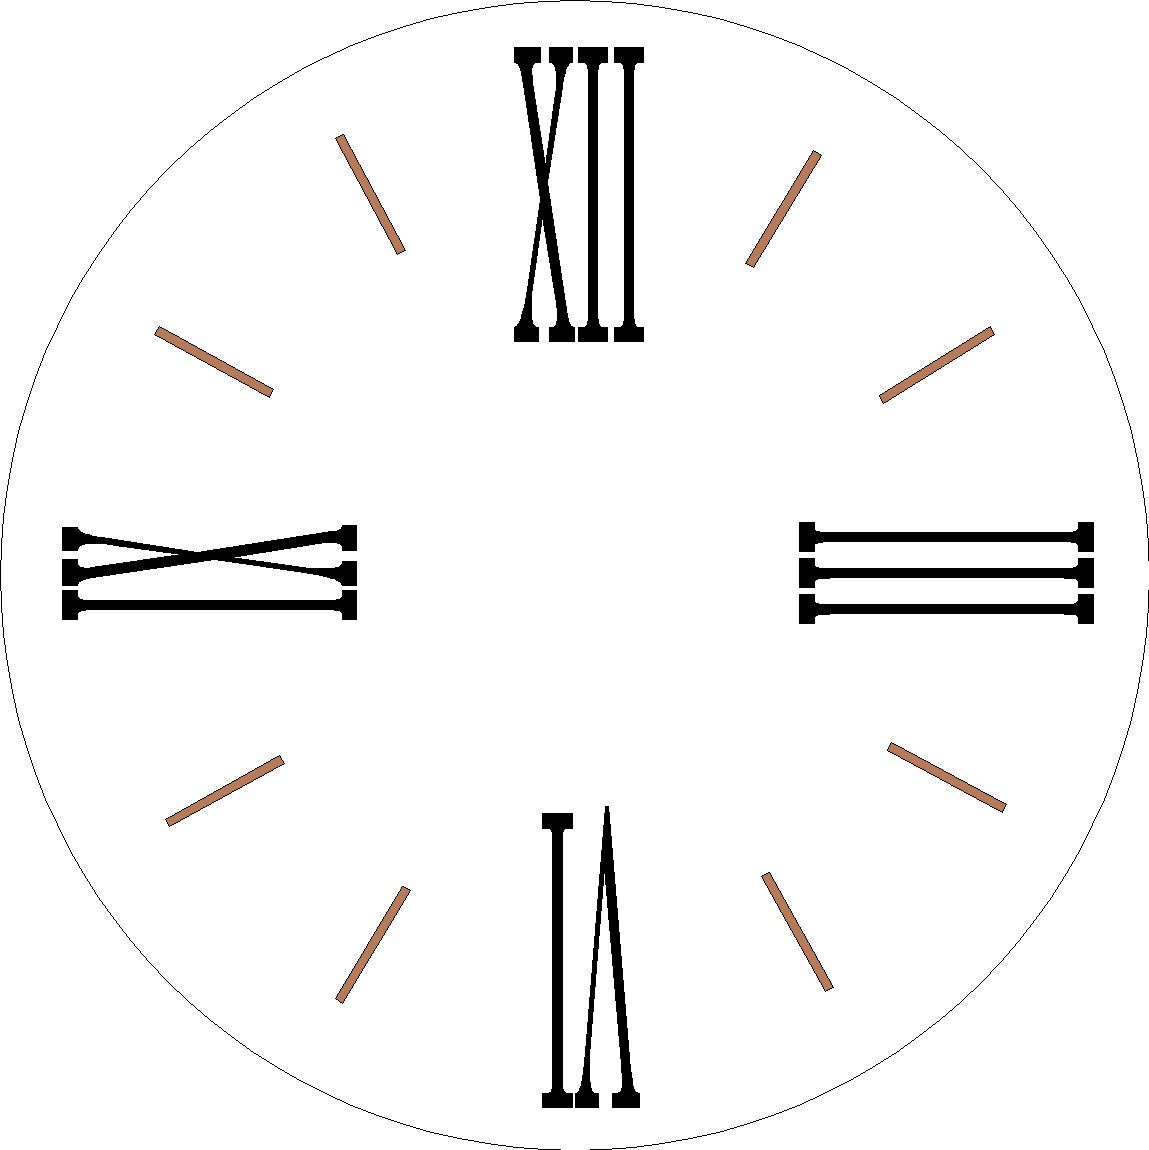 graphic about Roman Numeral Stencil Printable called via vinylexpress upon Etsy Roman Numeral stencil or decal dependent